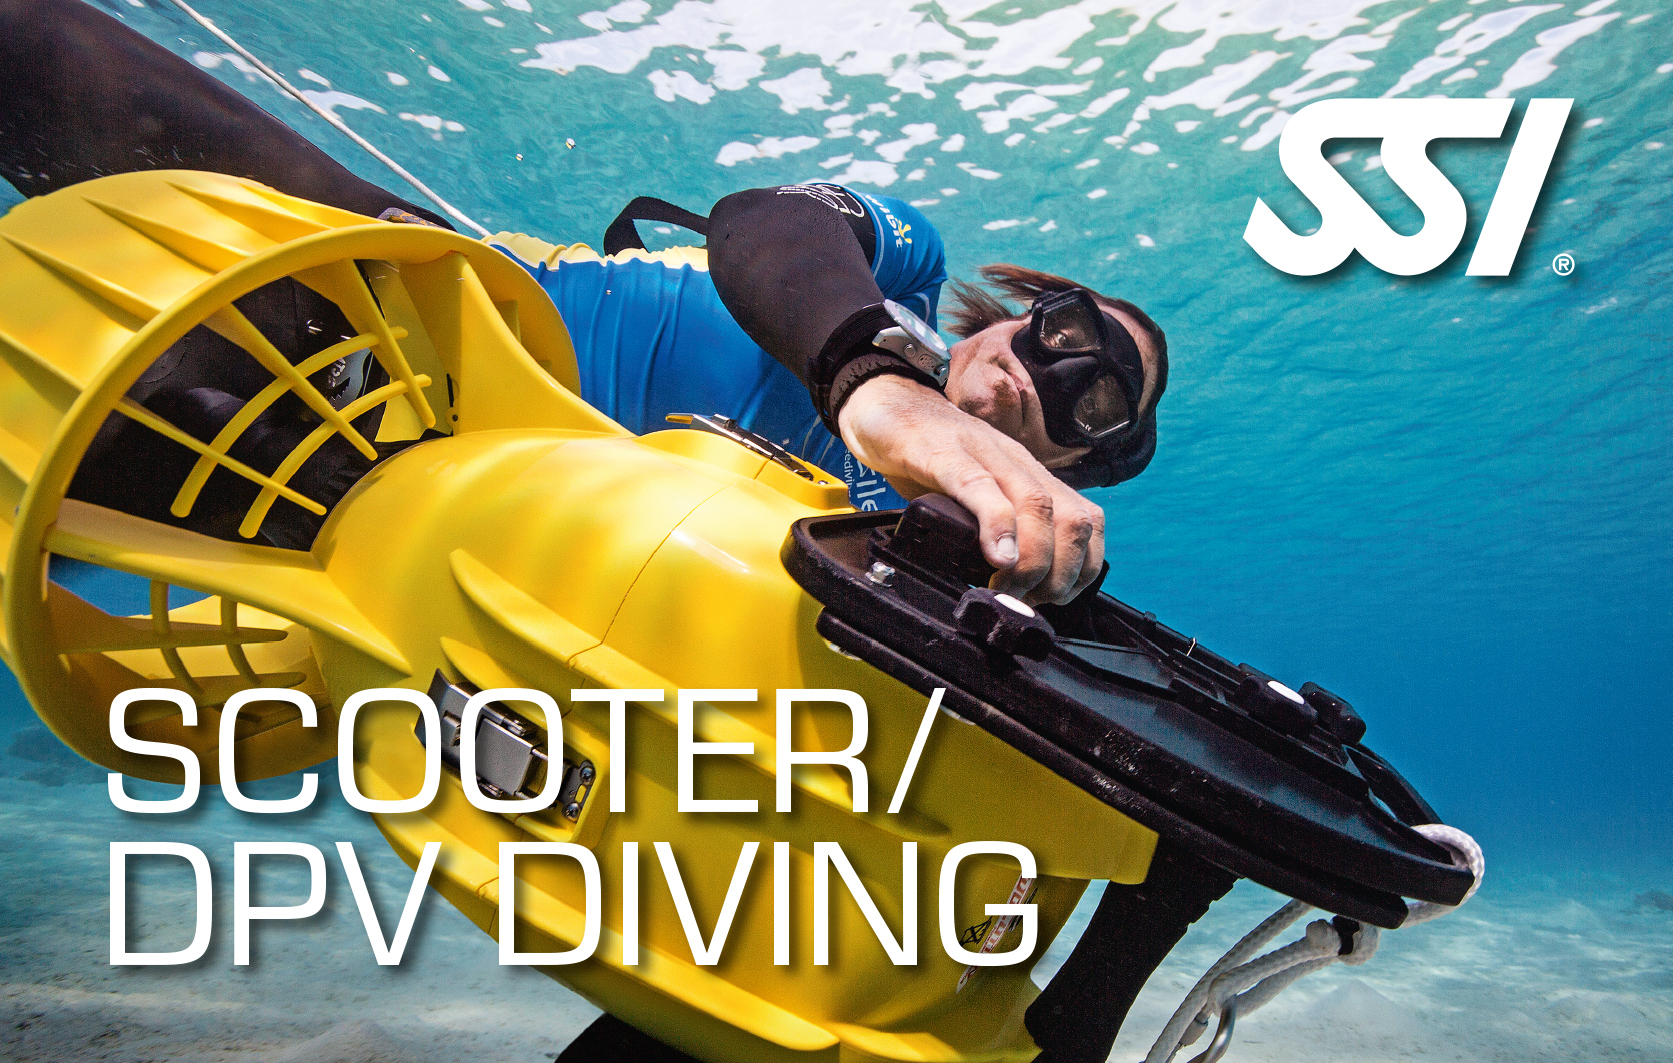 SSI Scooter Diving